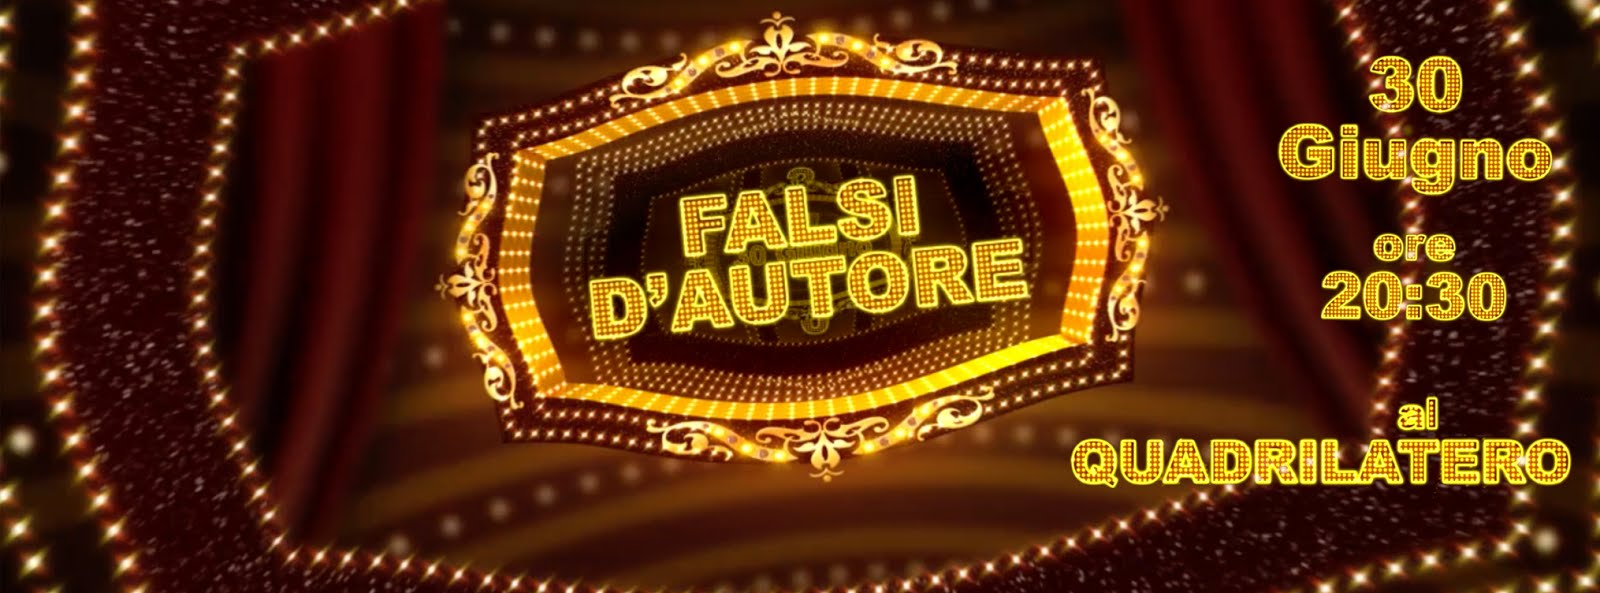 Promo >>> Falsi D'autore // Quadrilatero